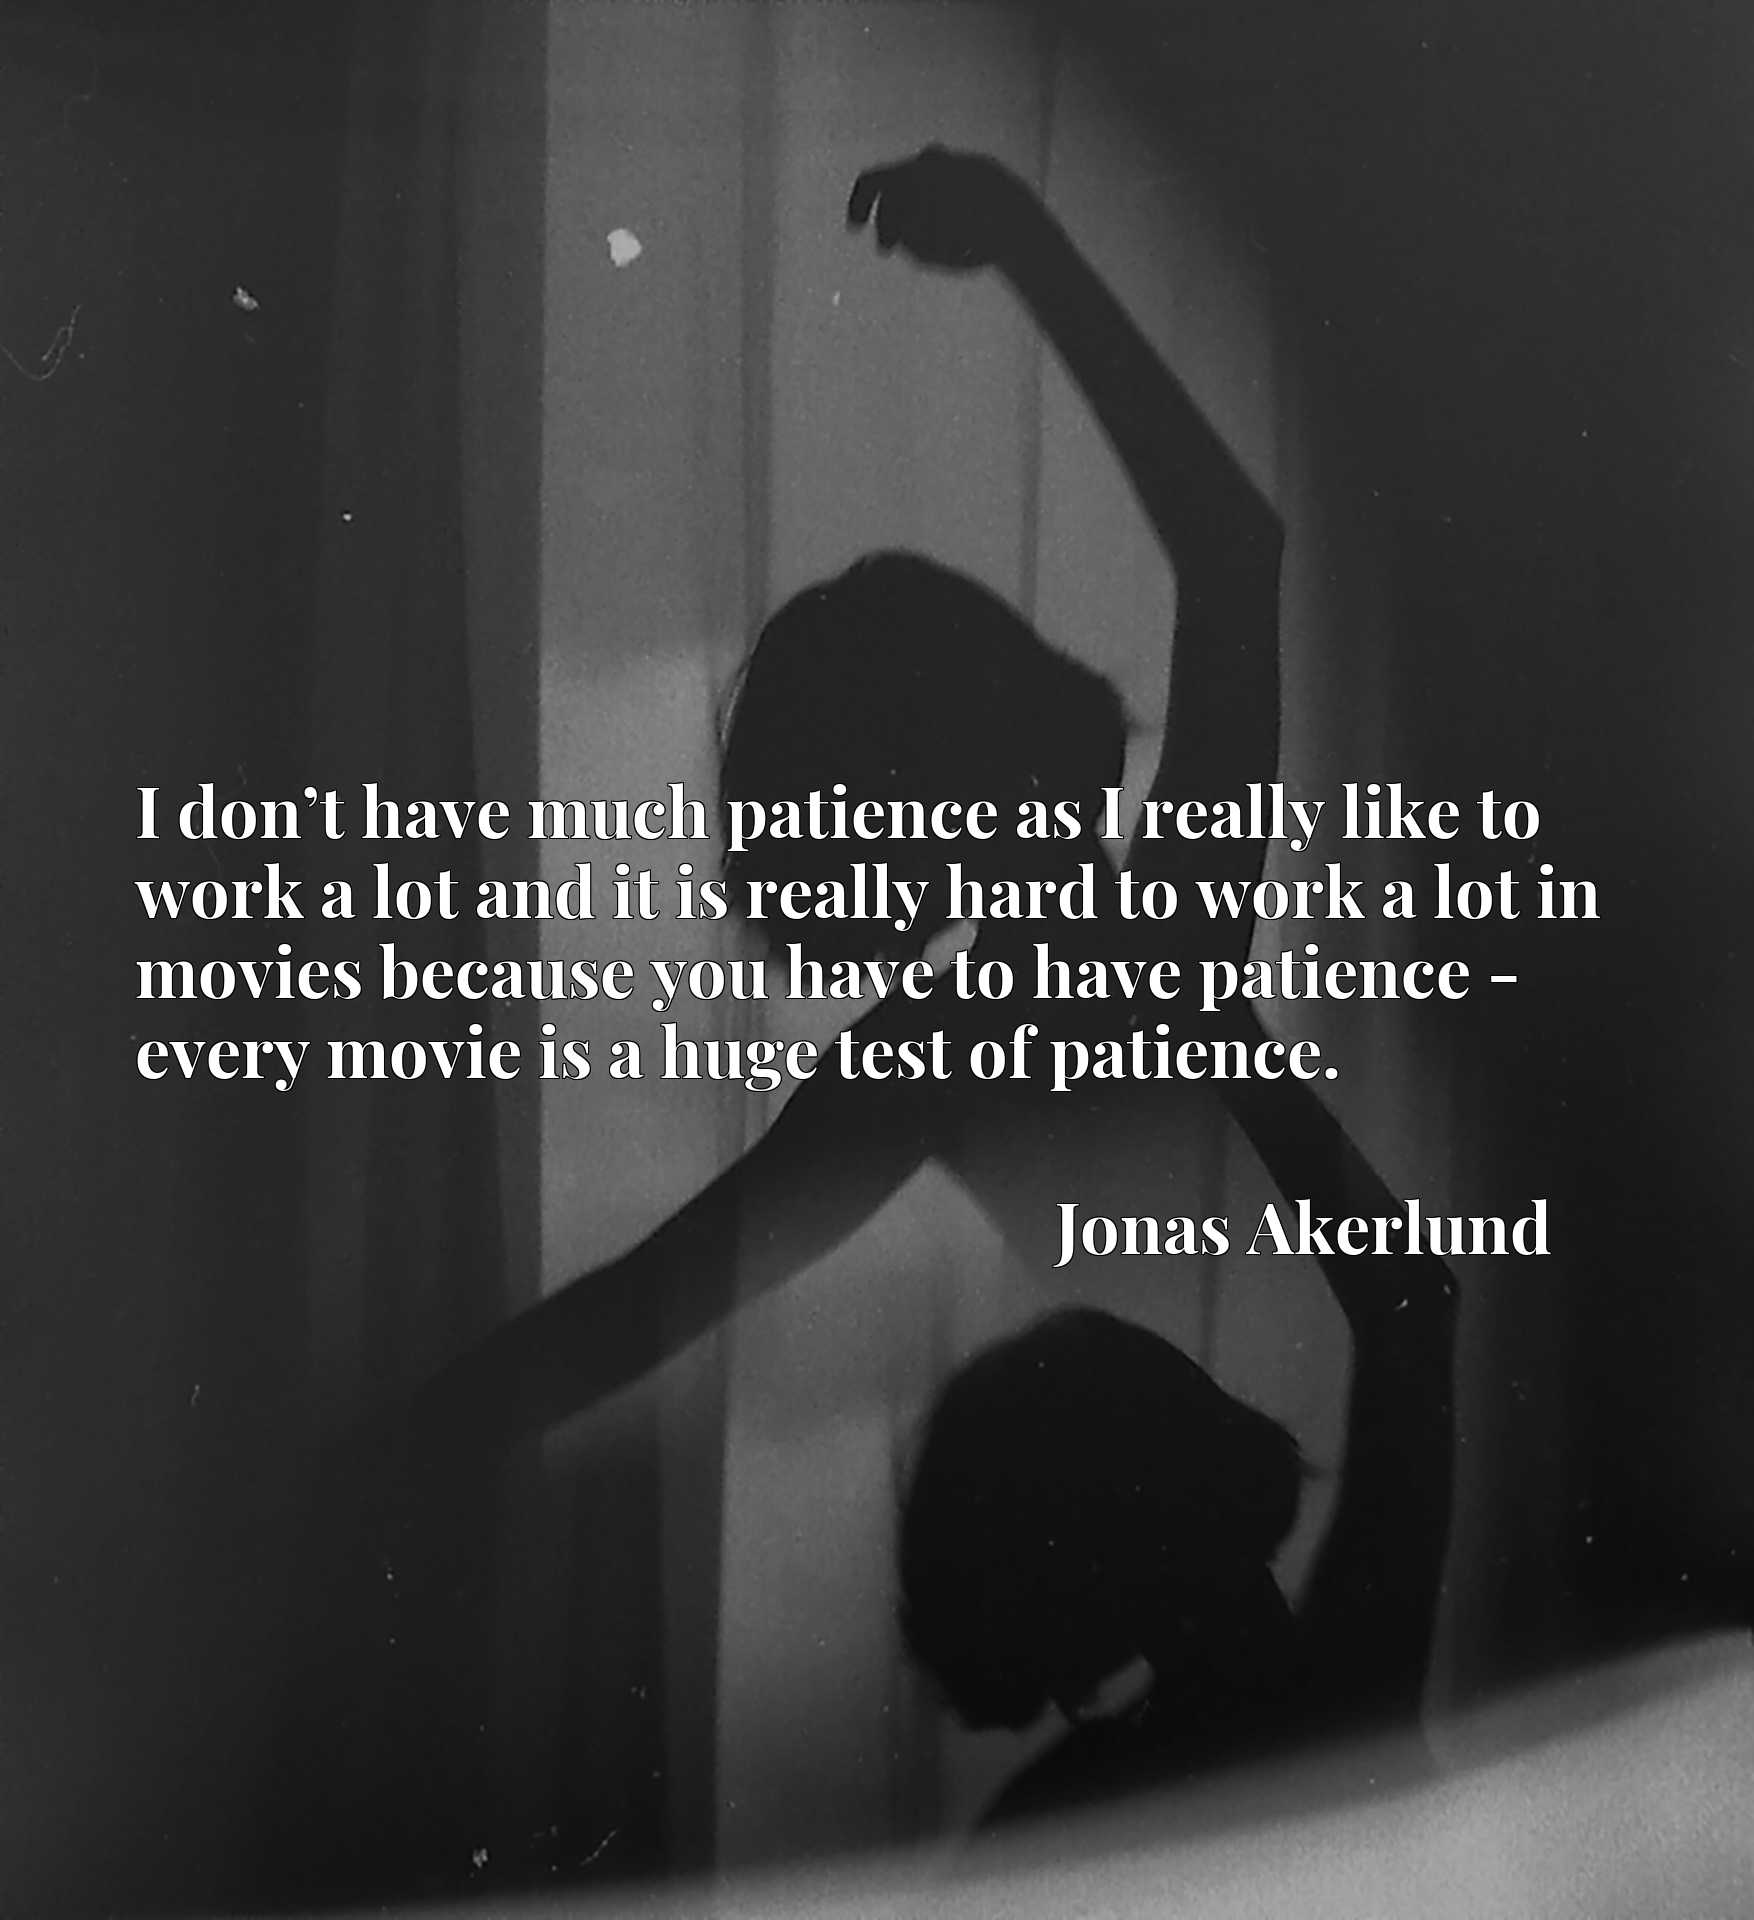 I don't have much patience as I really like to work a lot and it is really hard to work a lot in movies because you have to have patience - every movie is a huge test of patience.